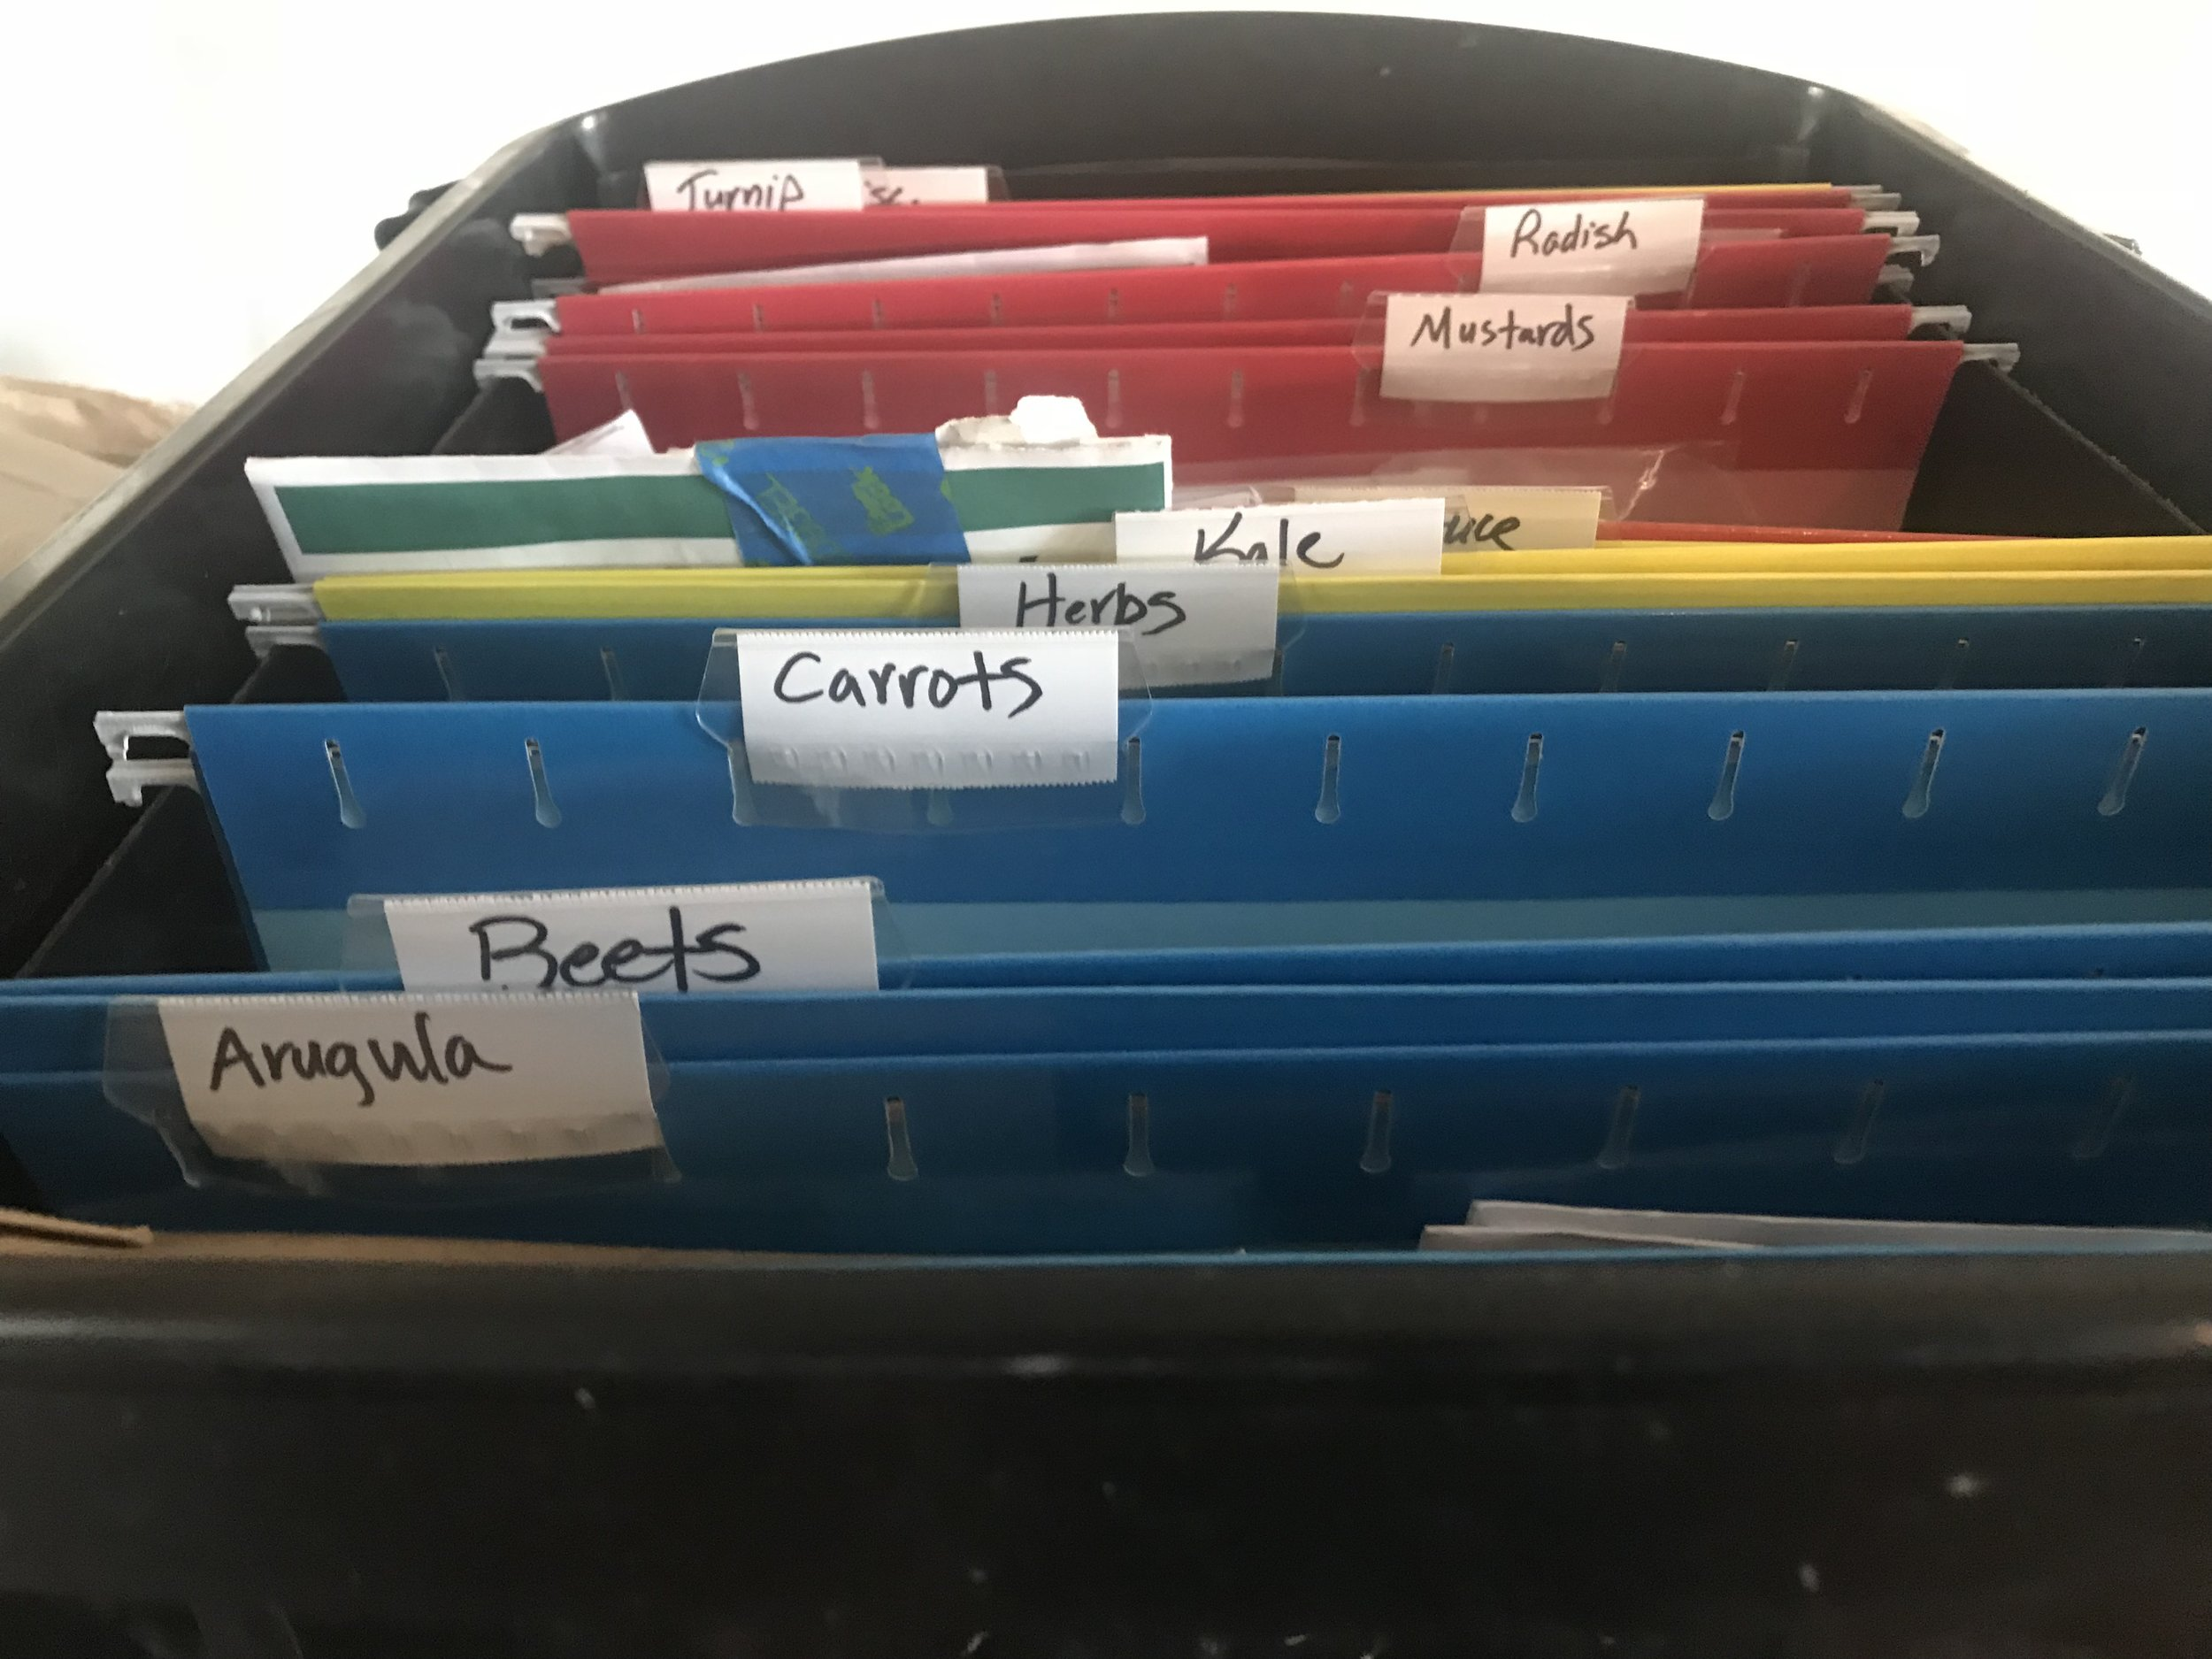 An example of how I store my seeds using a file box and file folders